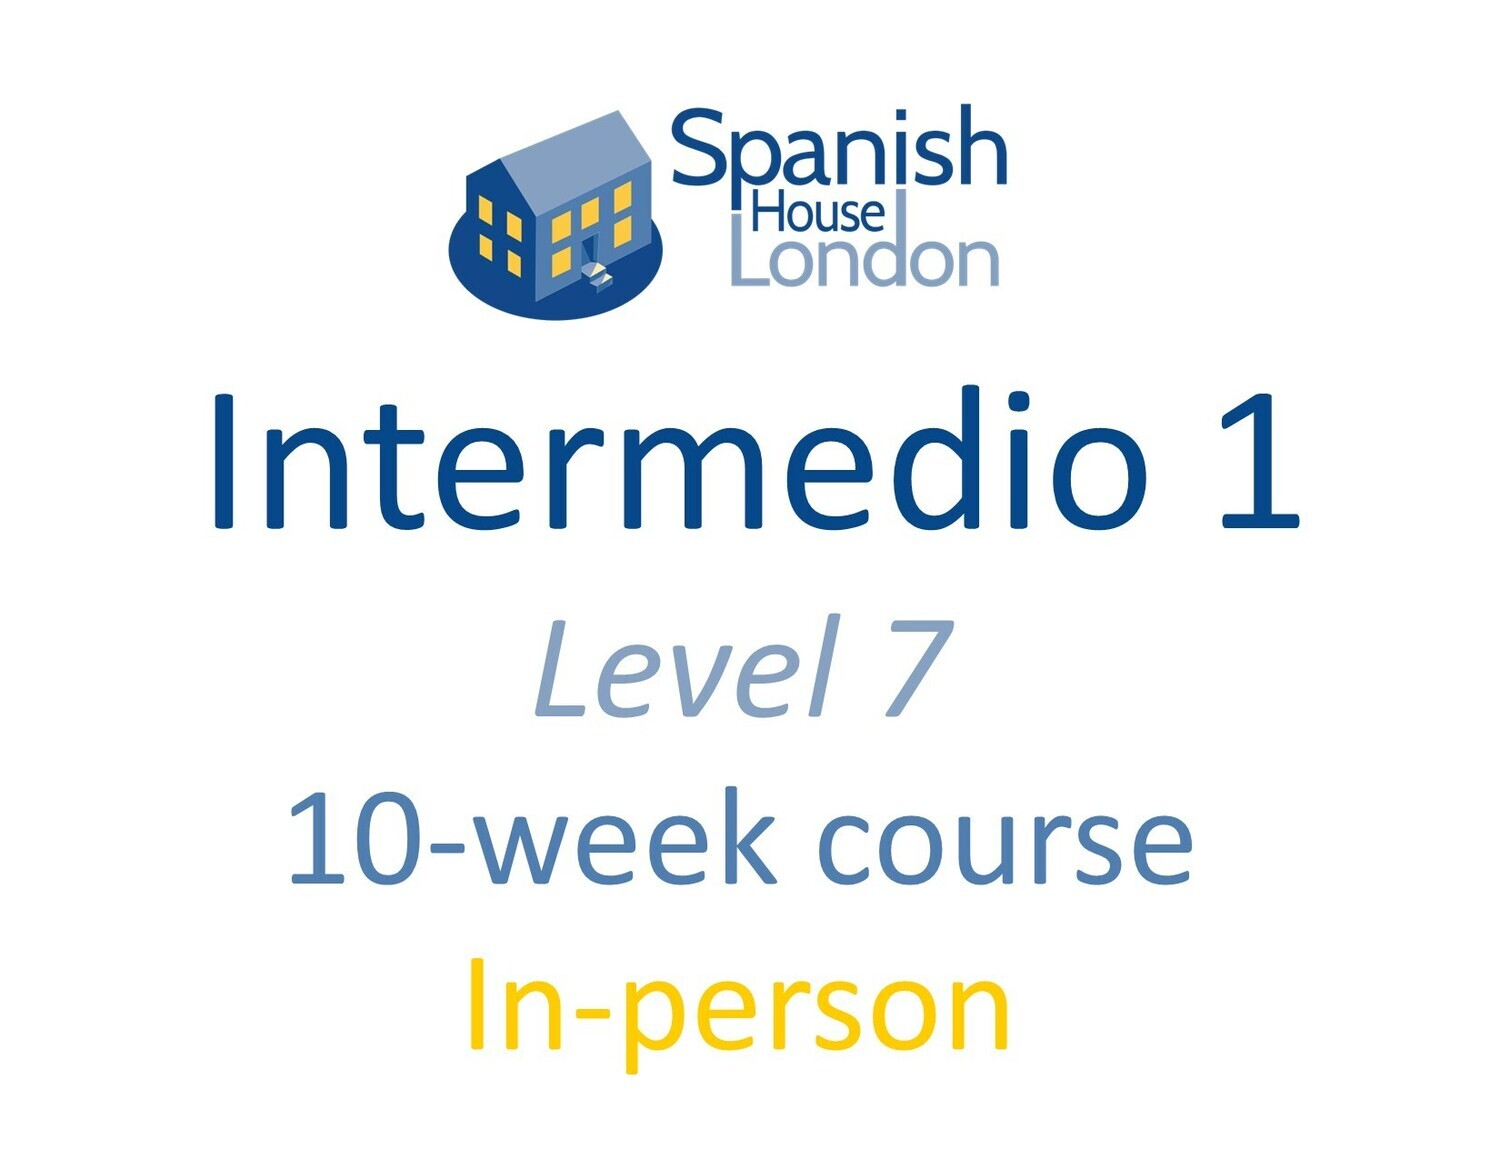 Intermedio 1 Course starting on 20th September at 6pm in Euston / King's Cross